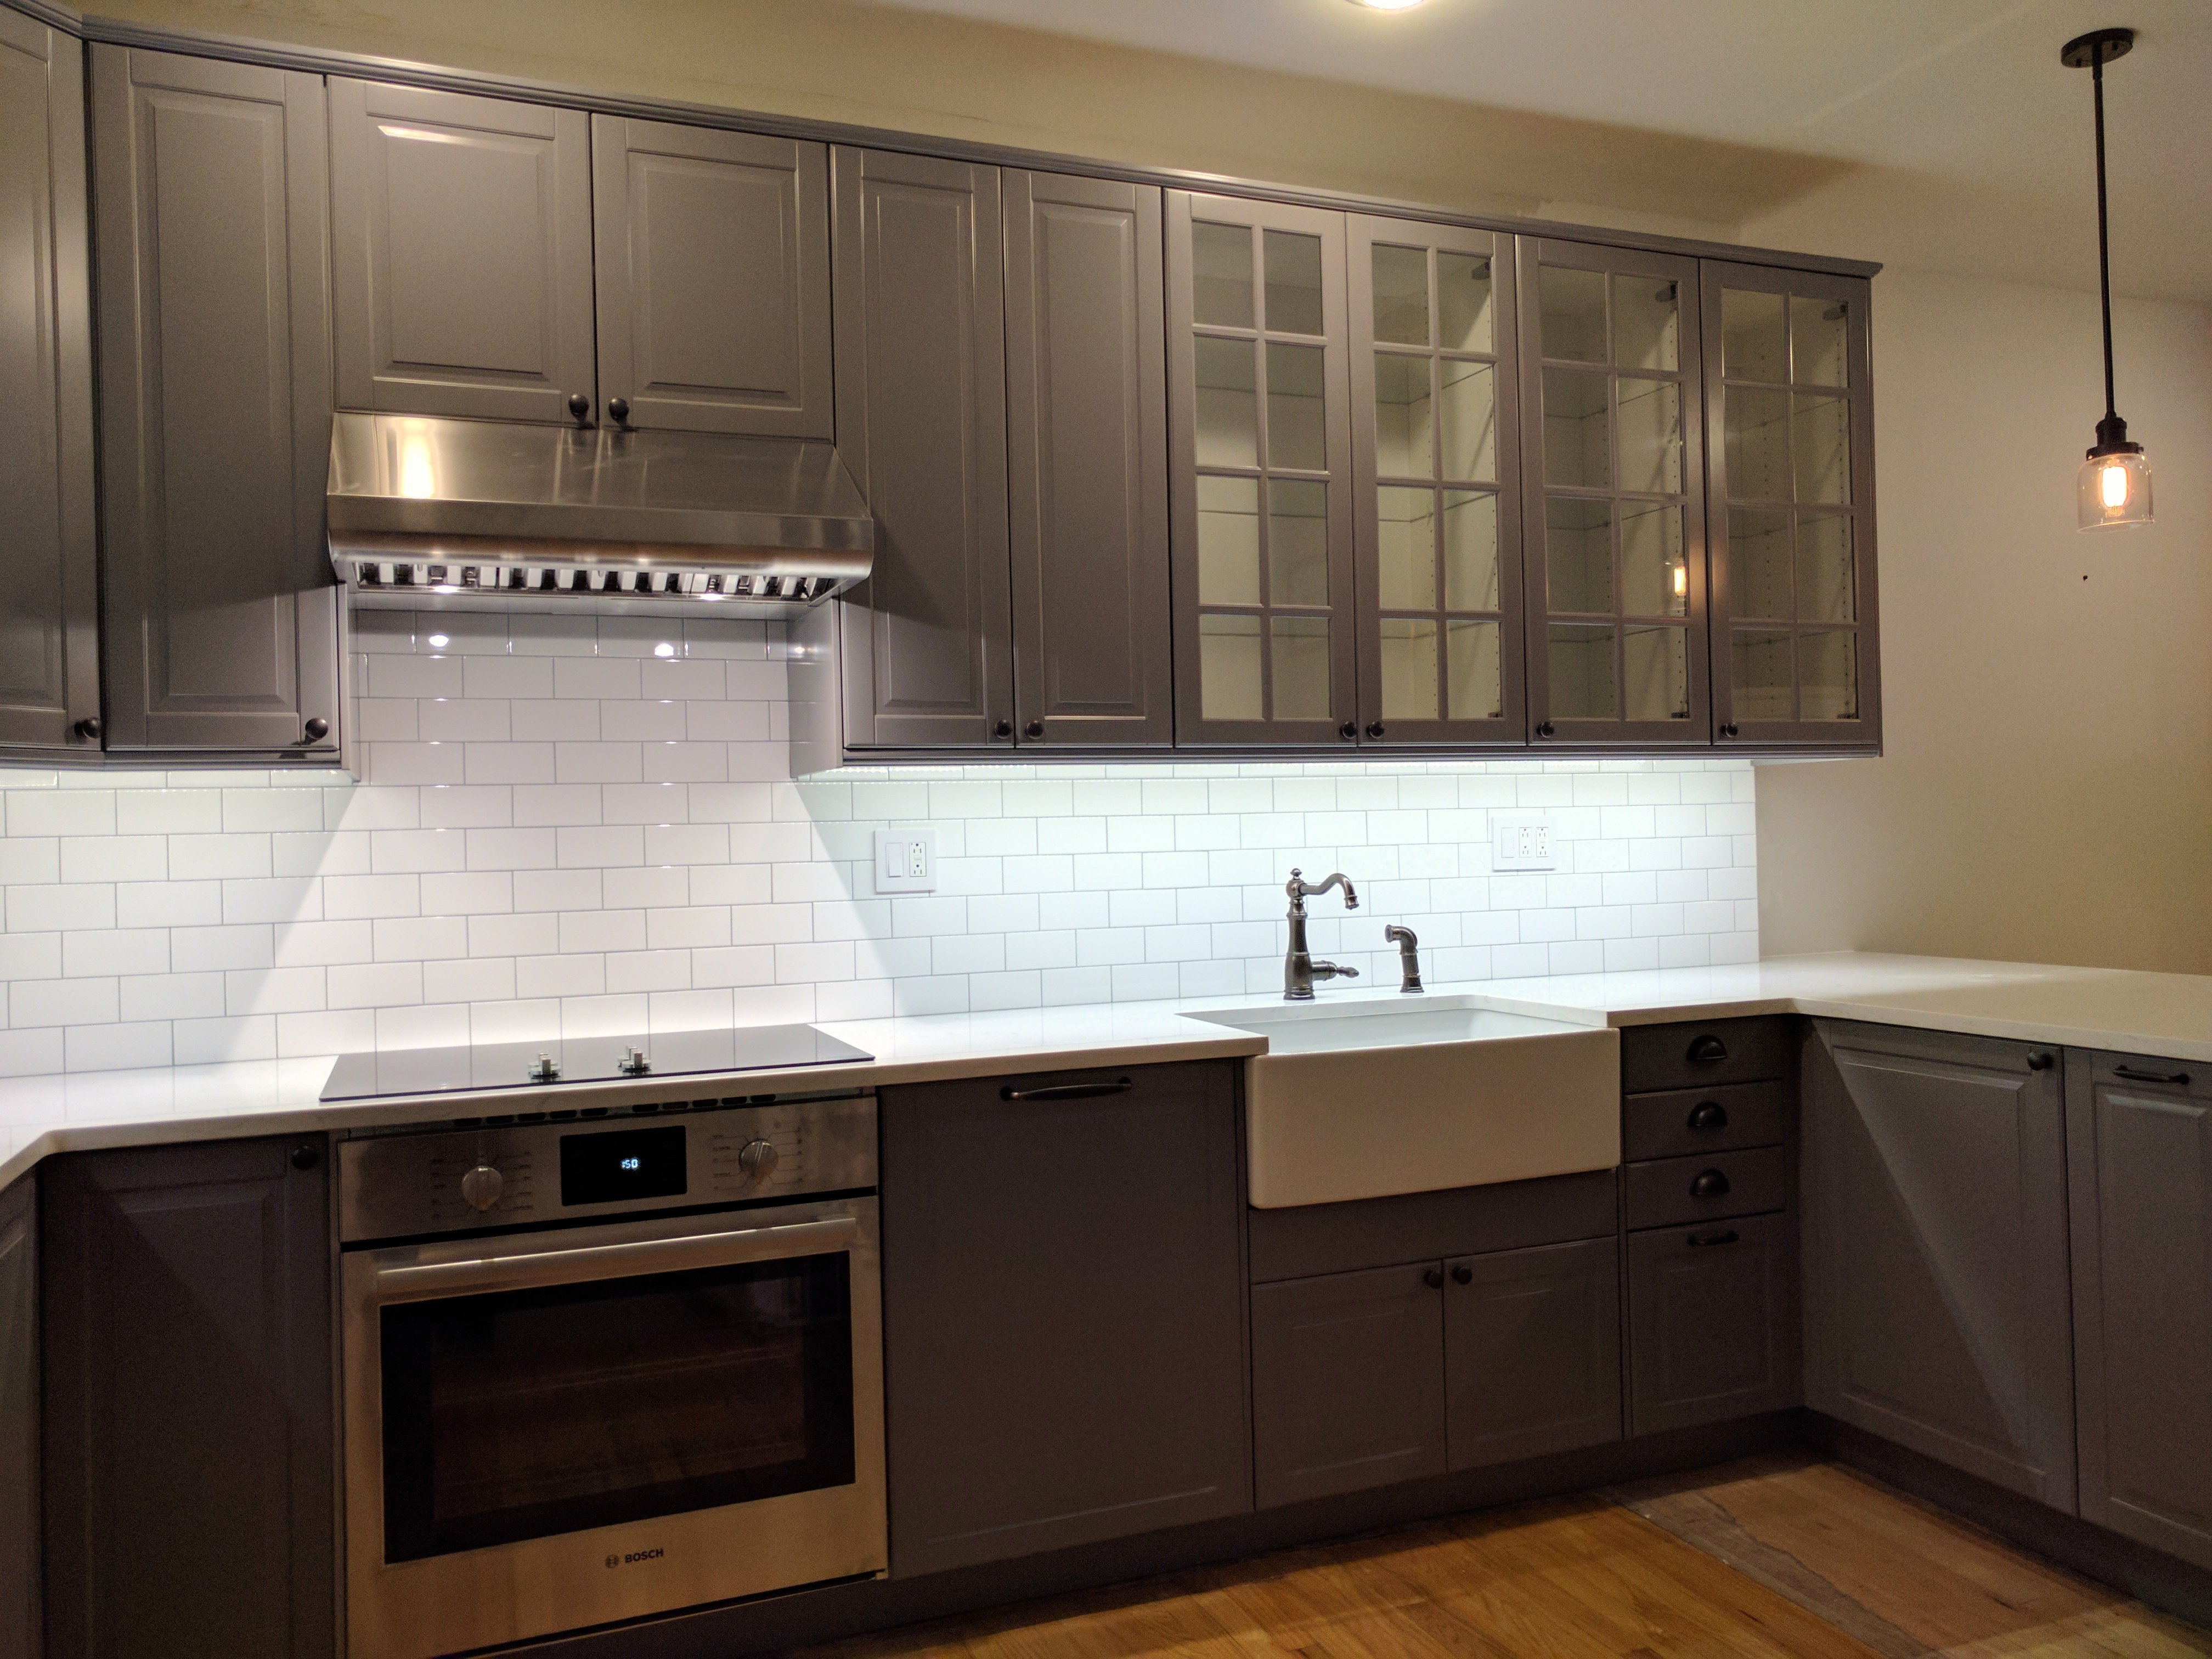 Hoboken Ikea Kitchen Makeover In Bodbyn Gray Basic Builders